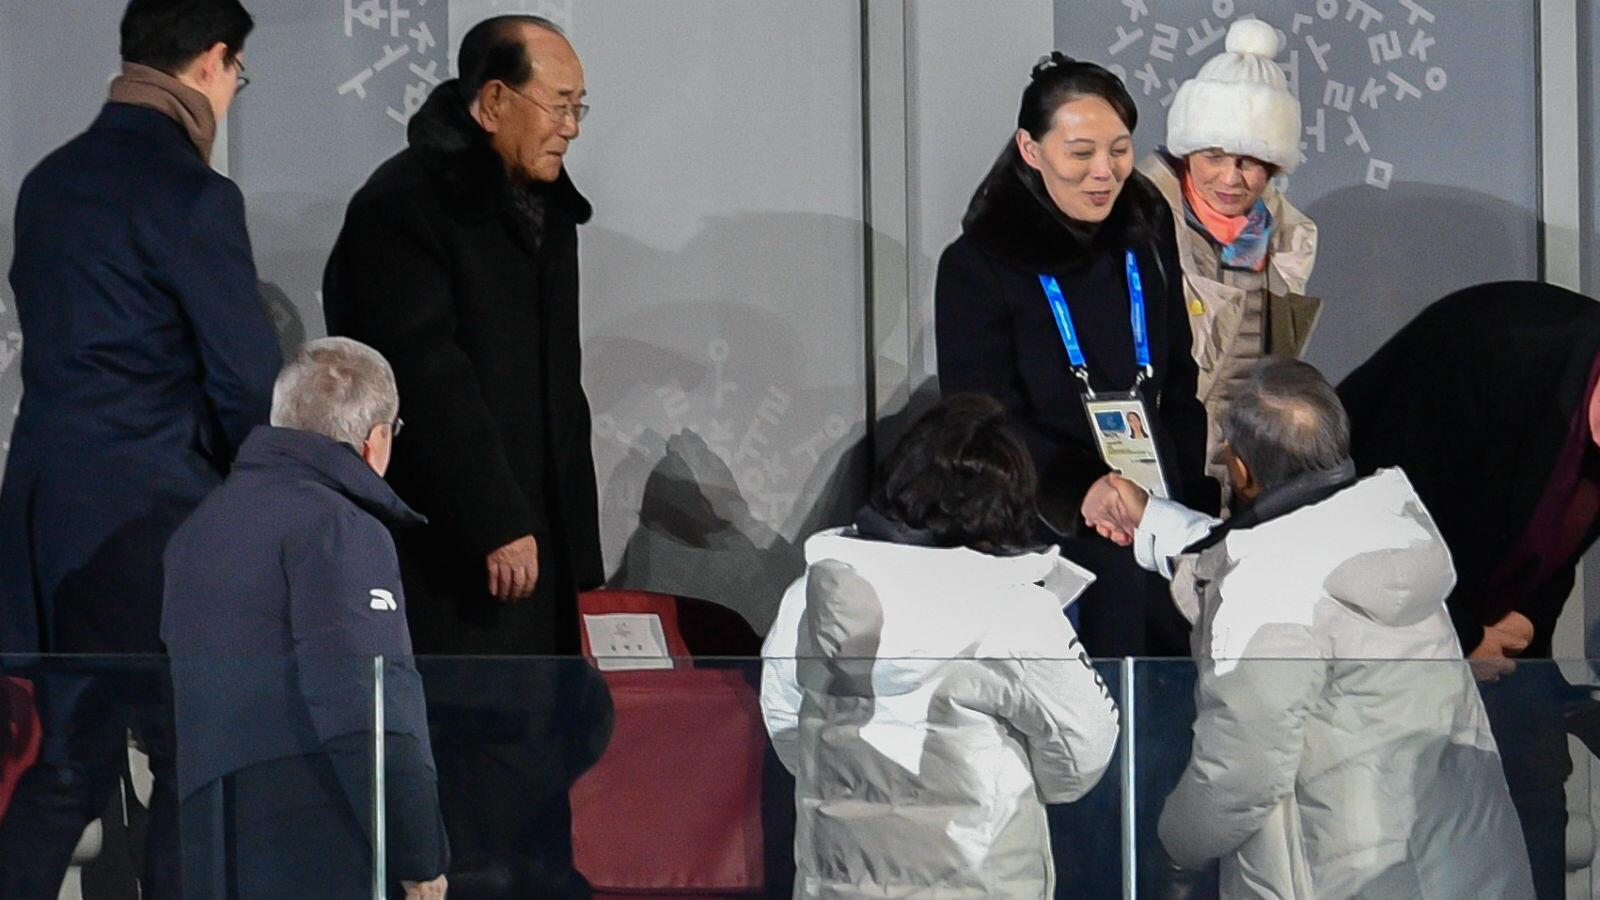 The image of a handshake between South Korean President Moon Jae-in and Kim Yo Jong, sister of North Korean leader Kim Jong Un, is sure to remain a highlight of the Olympics.